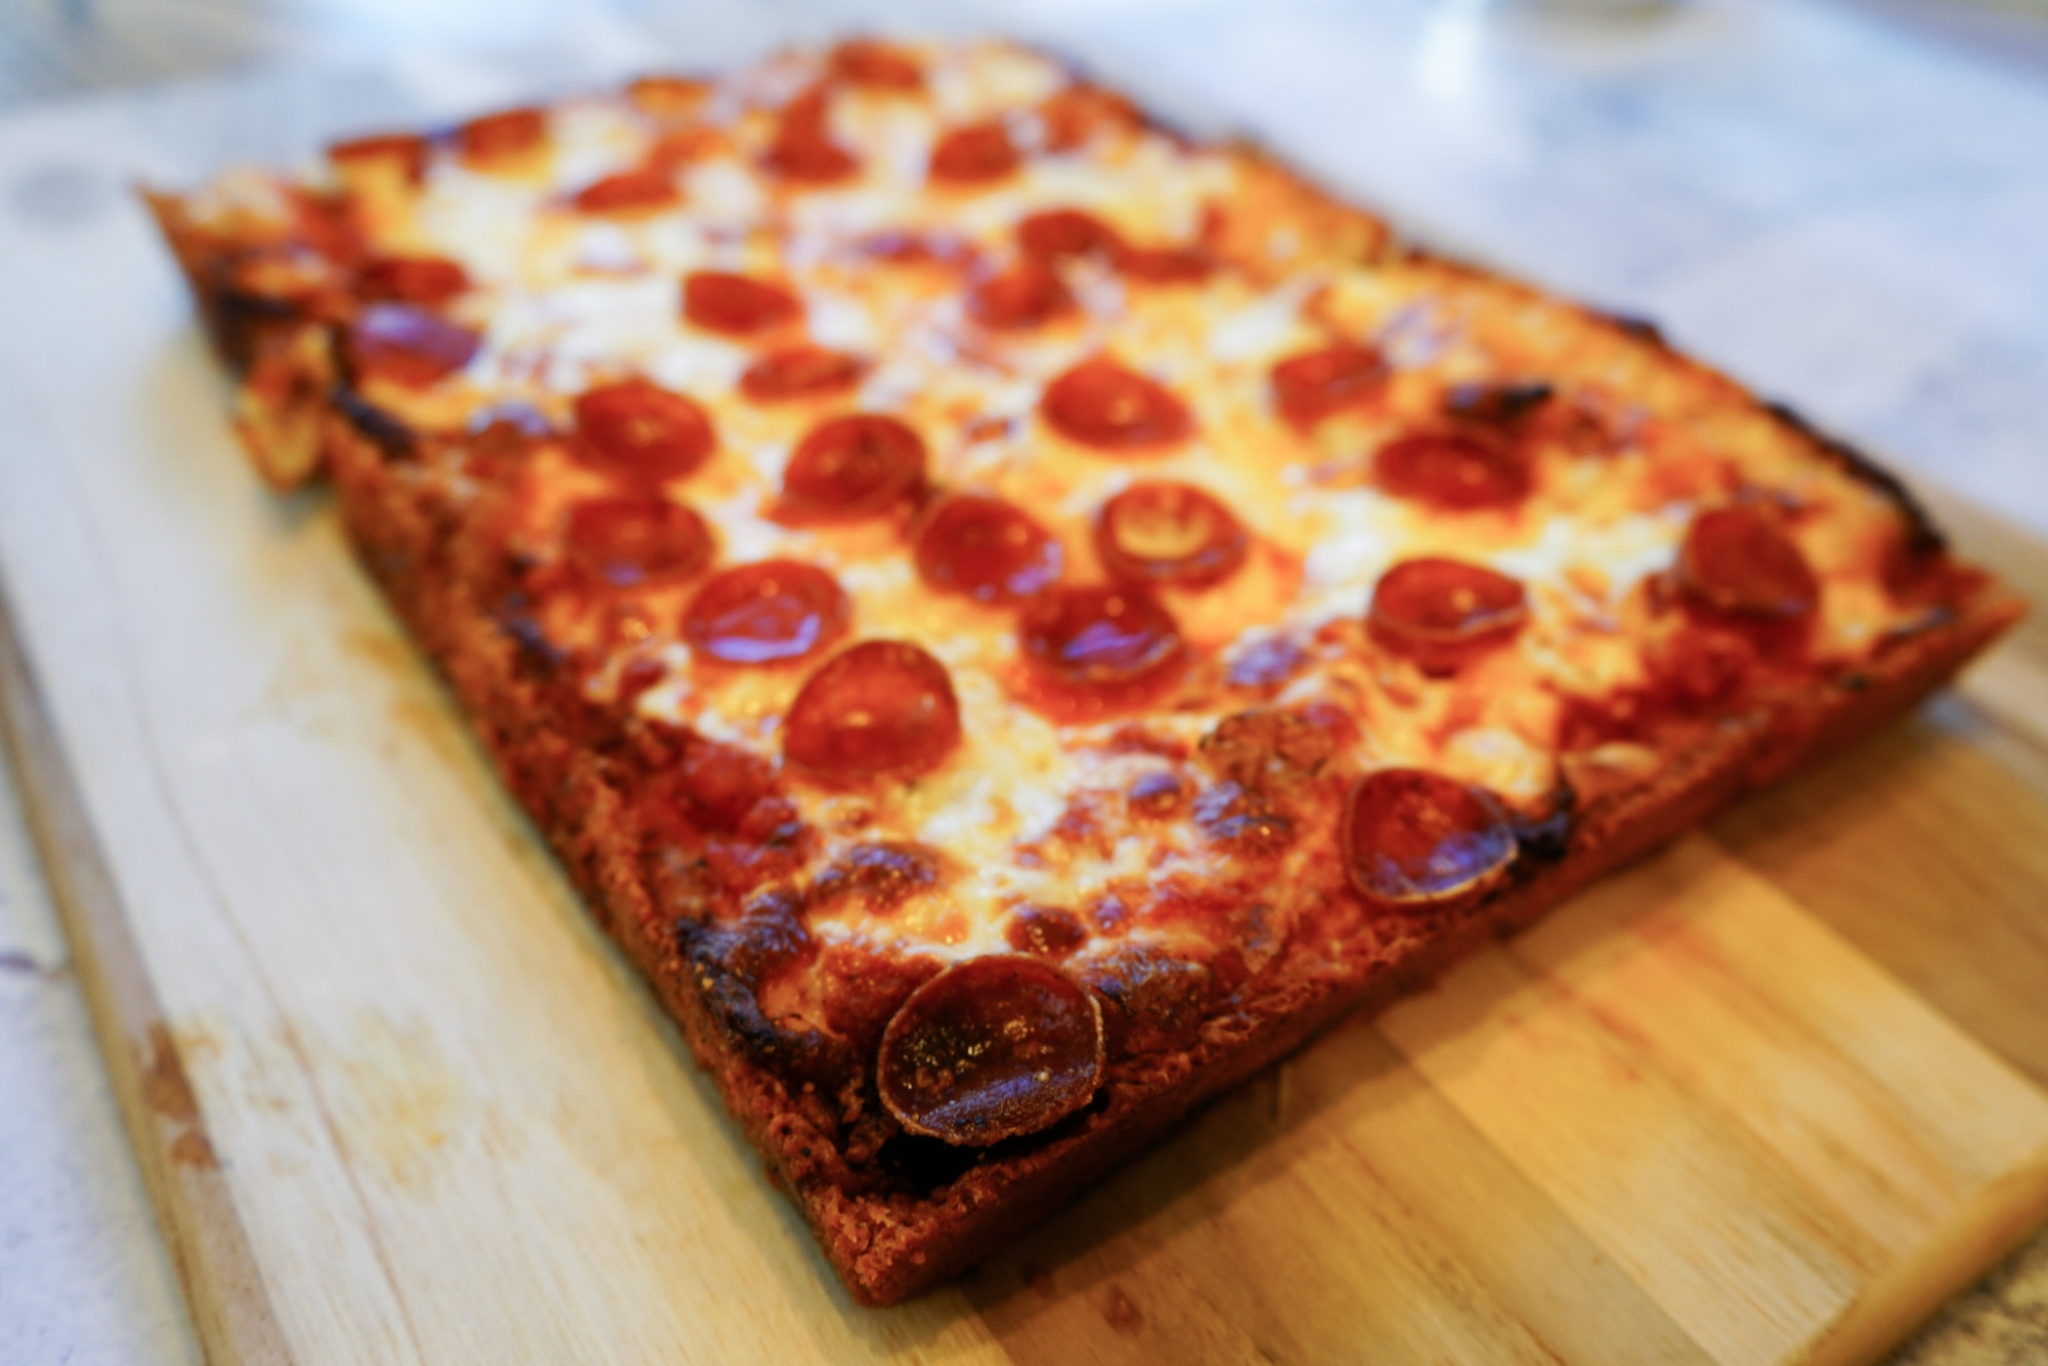 'The pan is forgiving': Why I plan to make more Detroit-style pizza at home